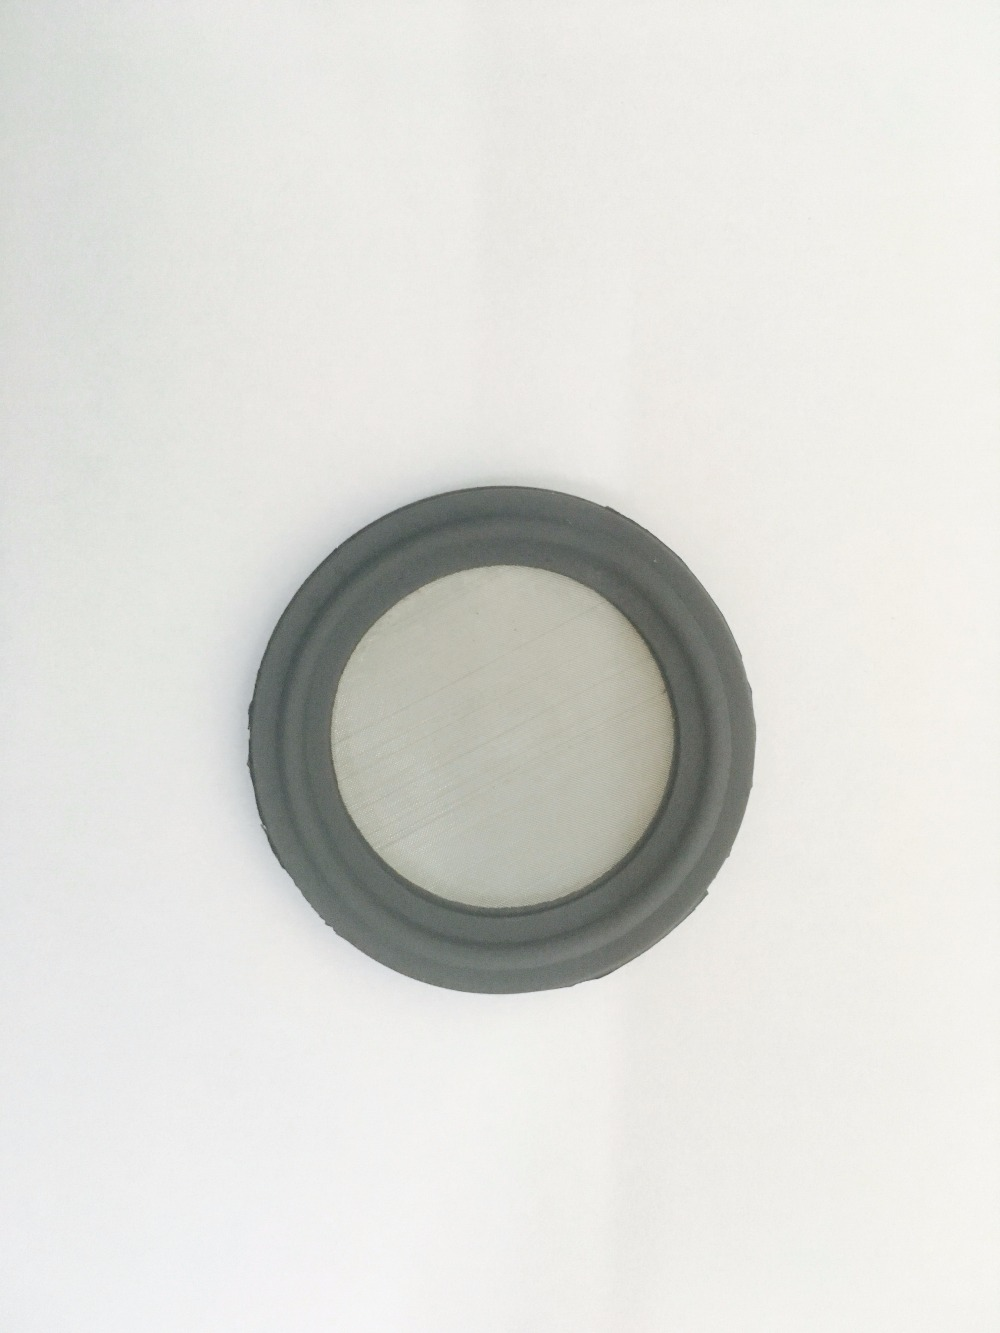 2  (51mm) Viton , FPM seal strip, stainless steel 304, Mash 150 micron 11 2 tri clamp viton screen mesh gaskets 150 mesh 100 micron without smell